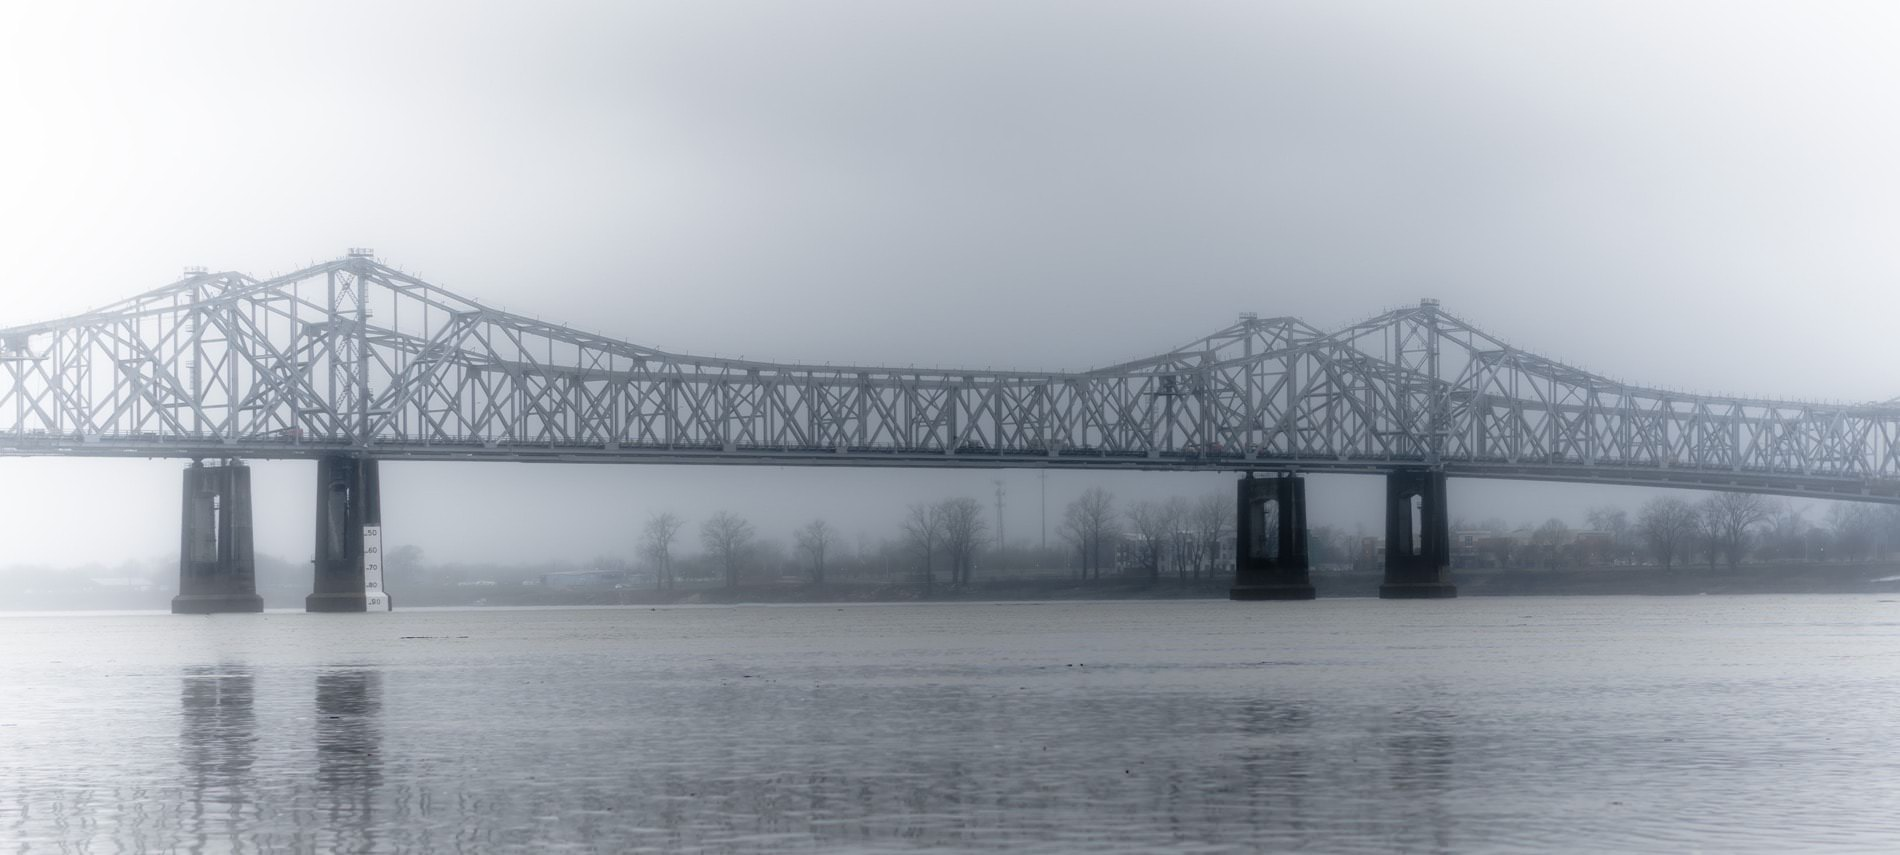 Long driving bridge over the water on a foggy day with bare trees lining the shore in the background